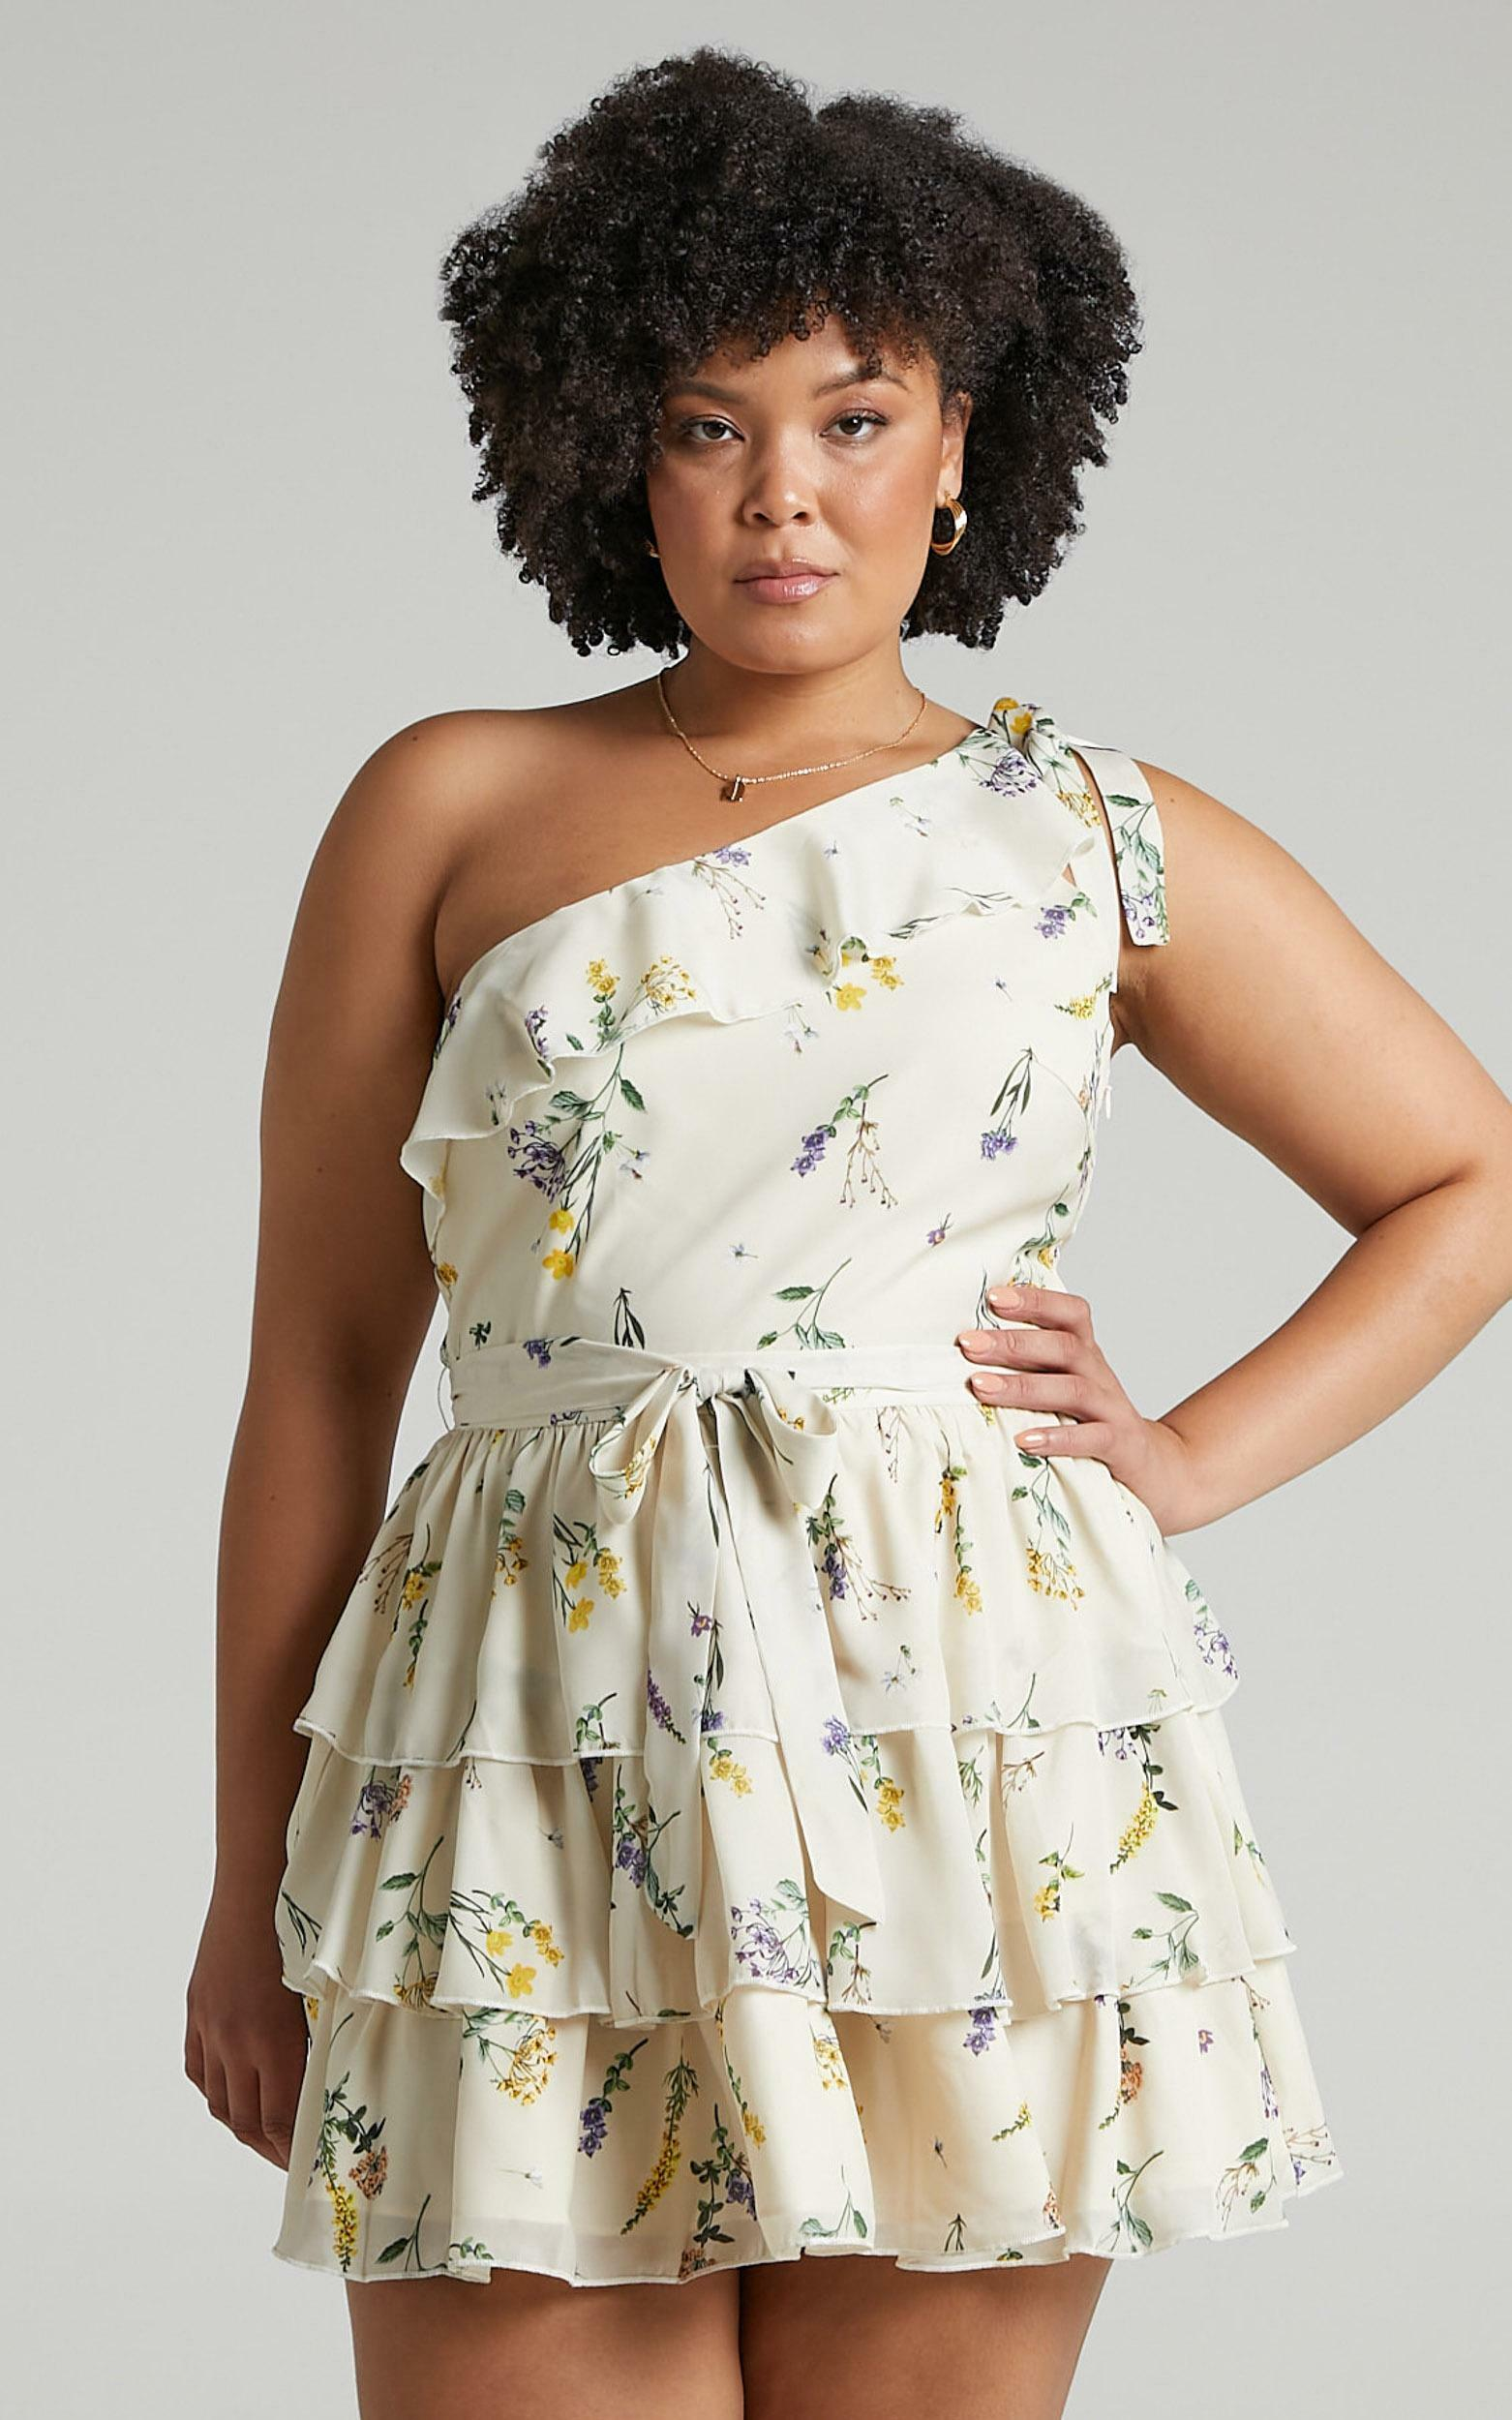 Dreaming Of Us Dress in botanical floral - 20 (XXXXL), Cream, hi-res image number null